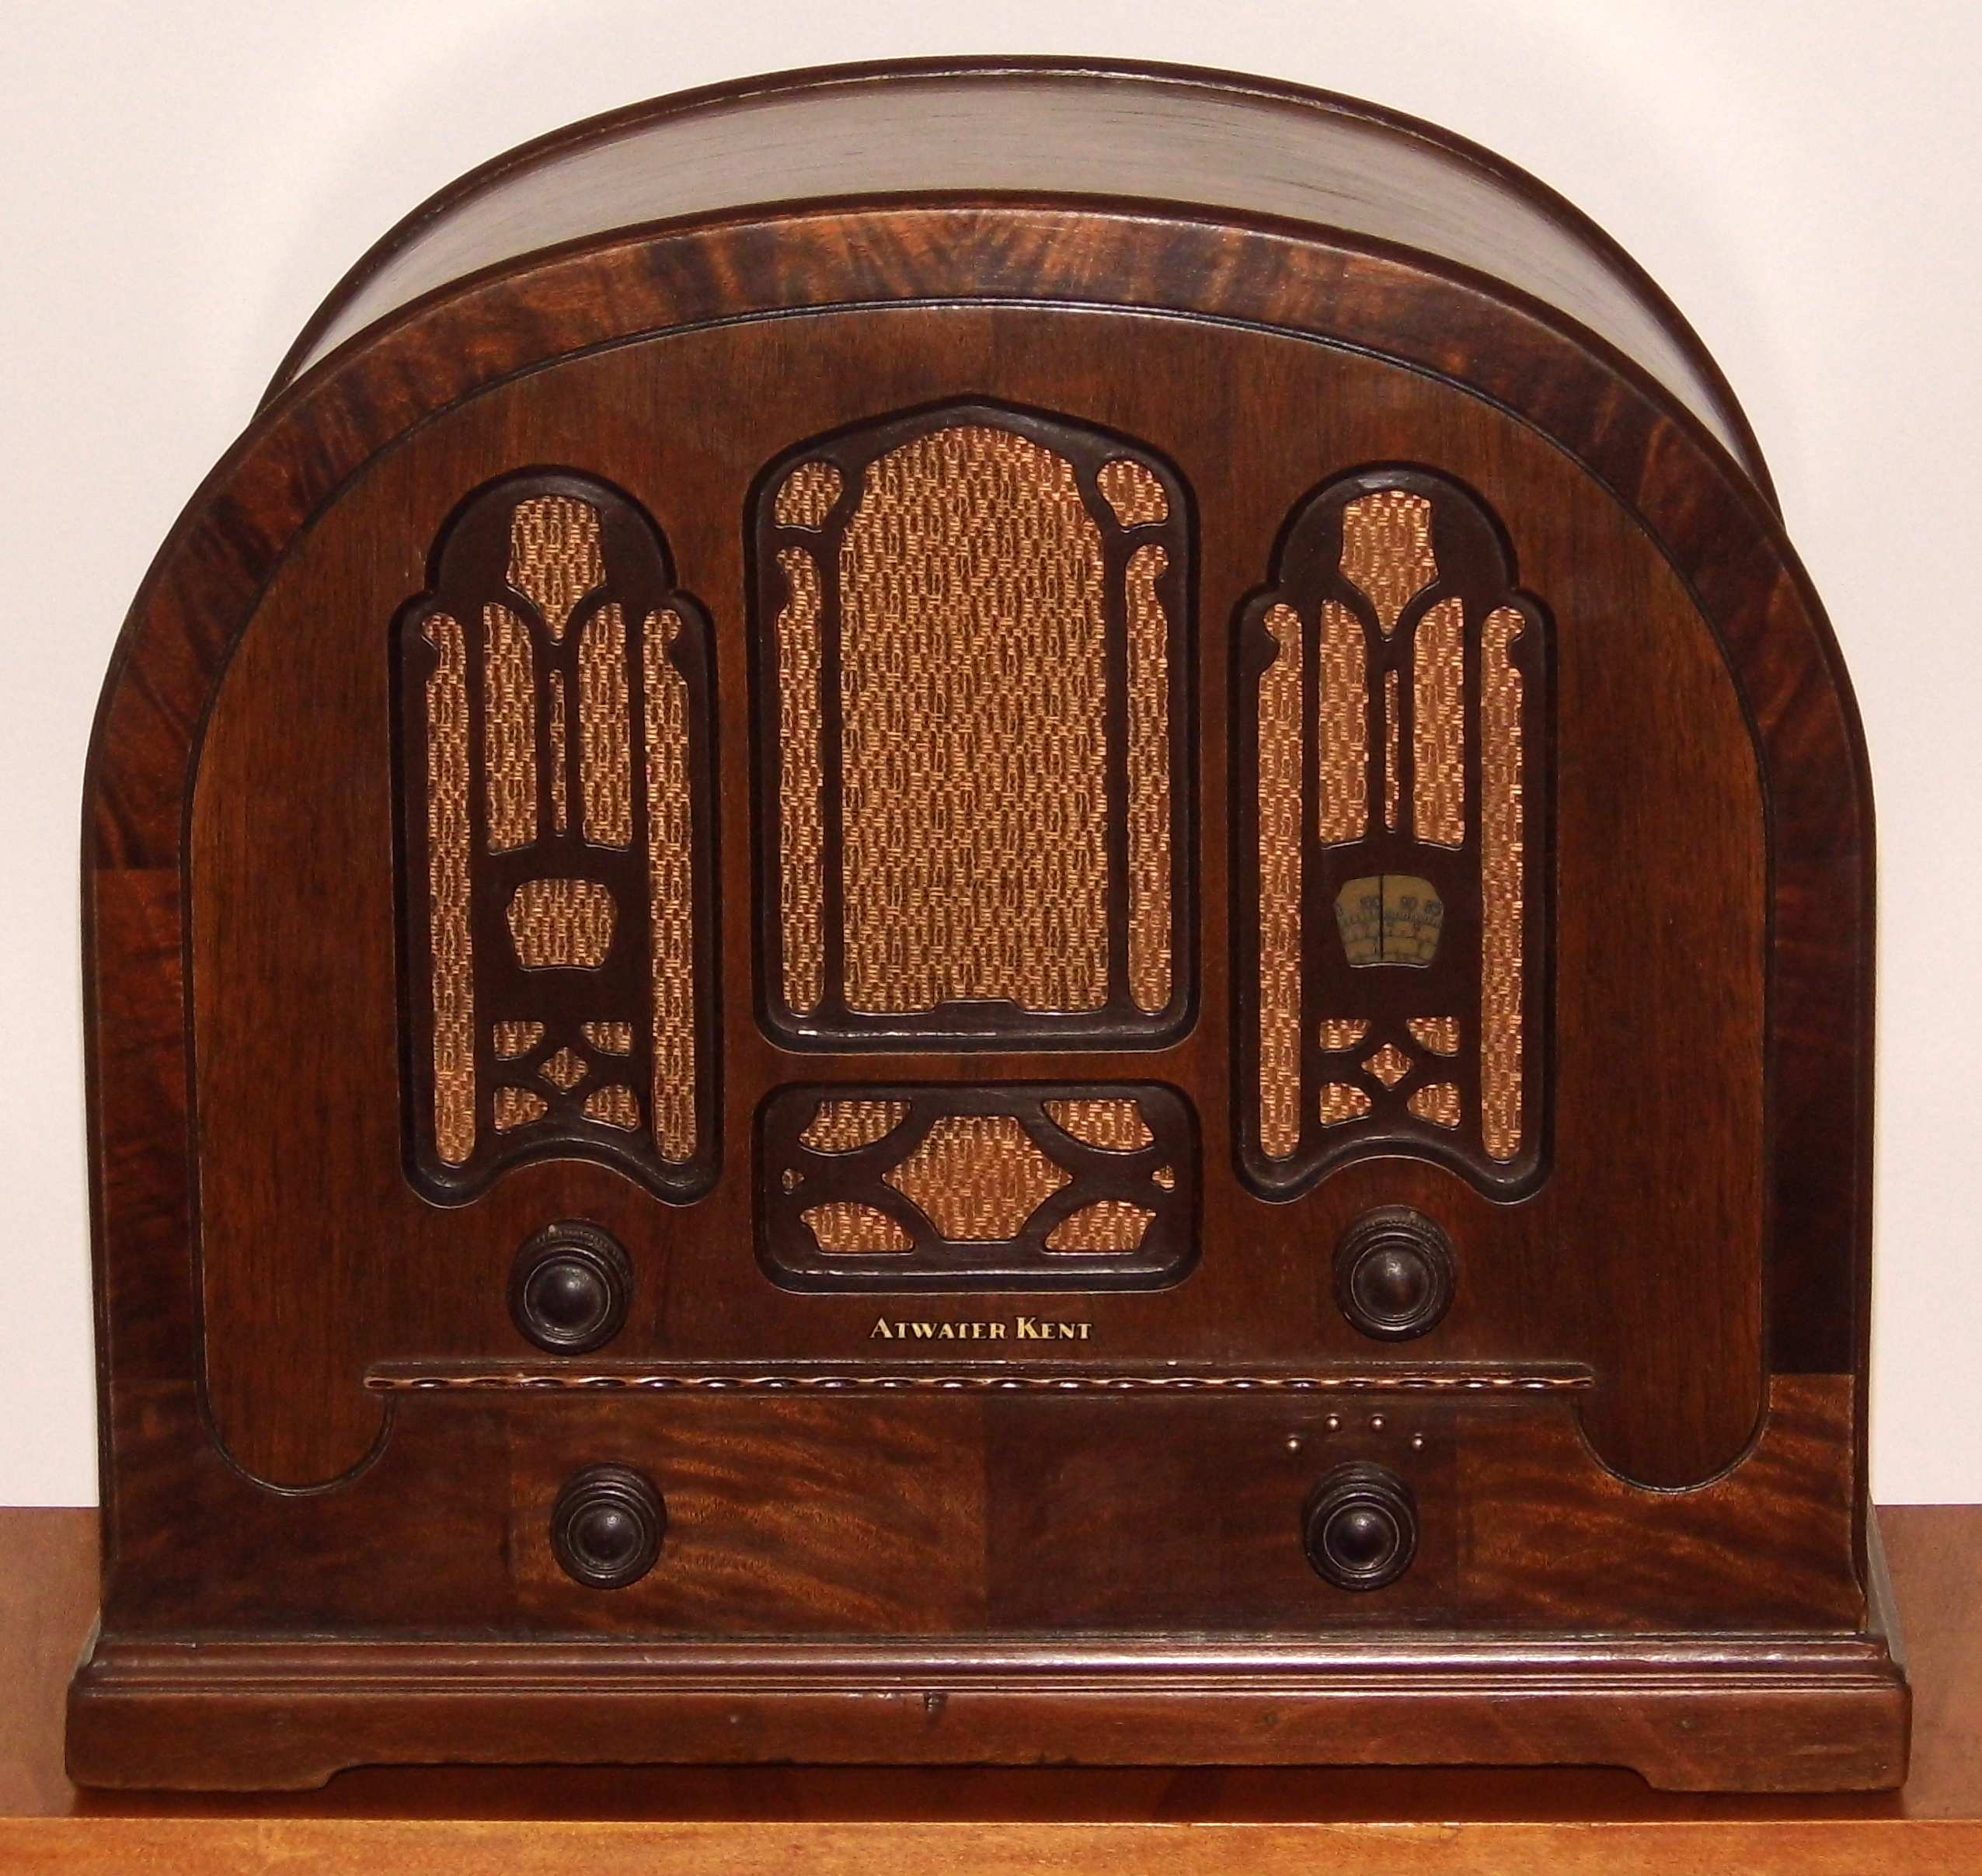 FileVintage Atwater Kent Cathedral Radio Model 708